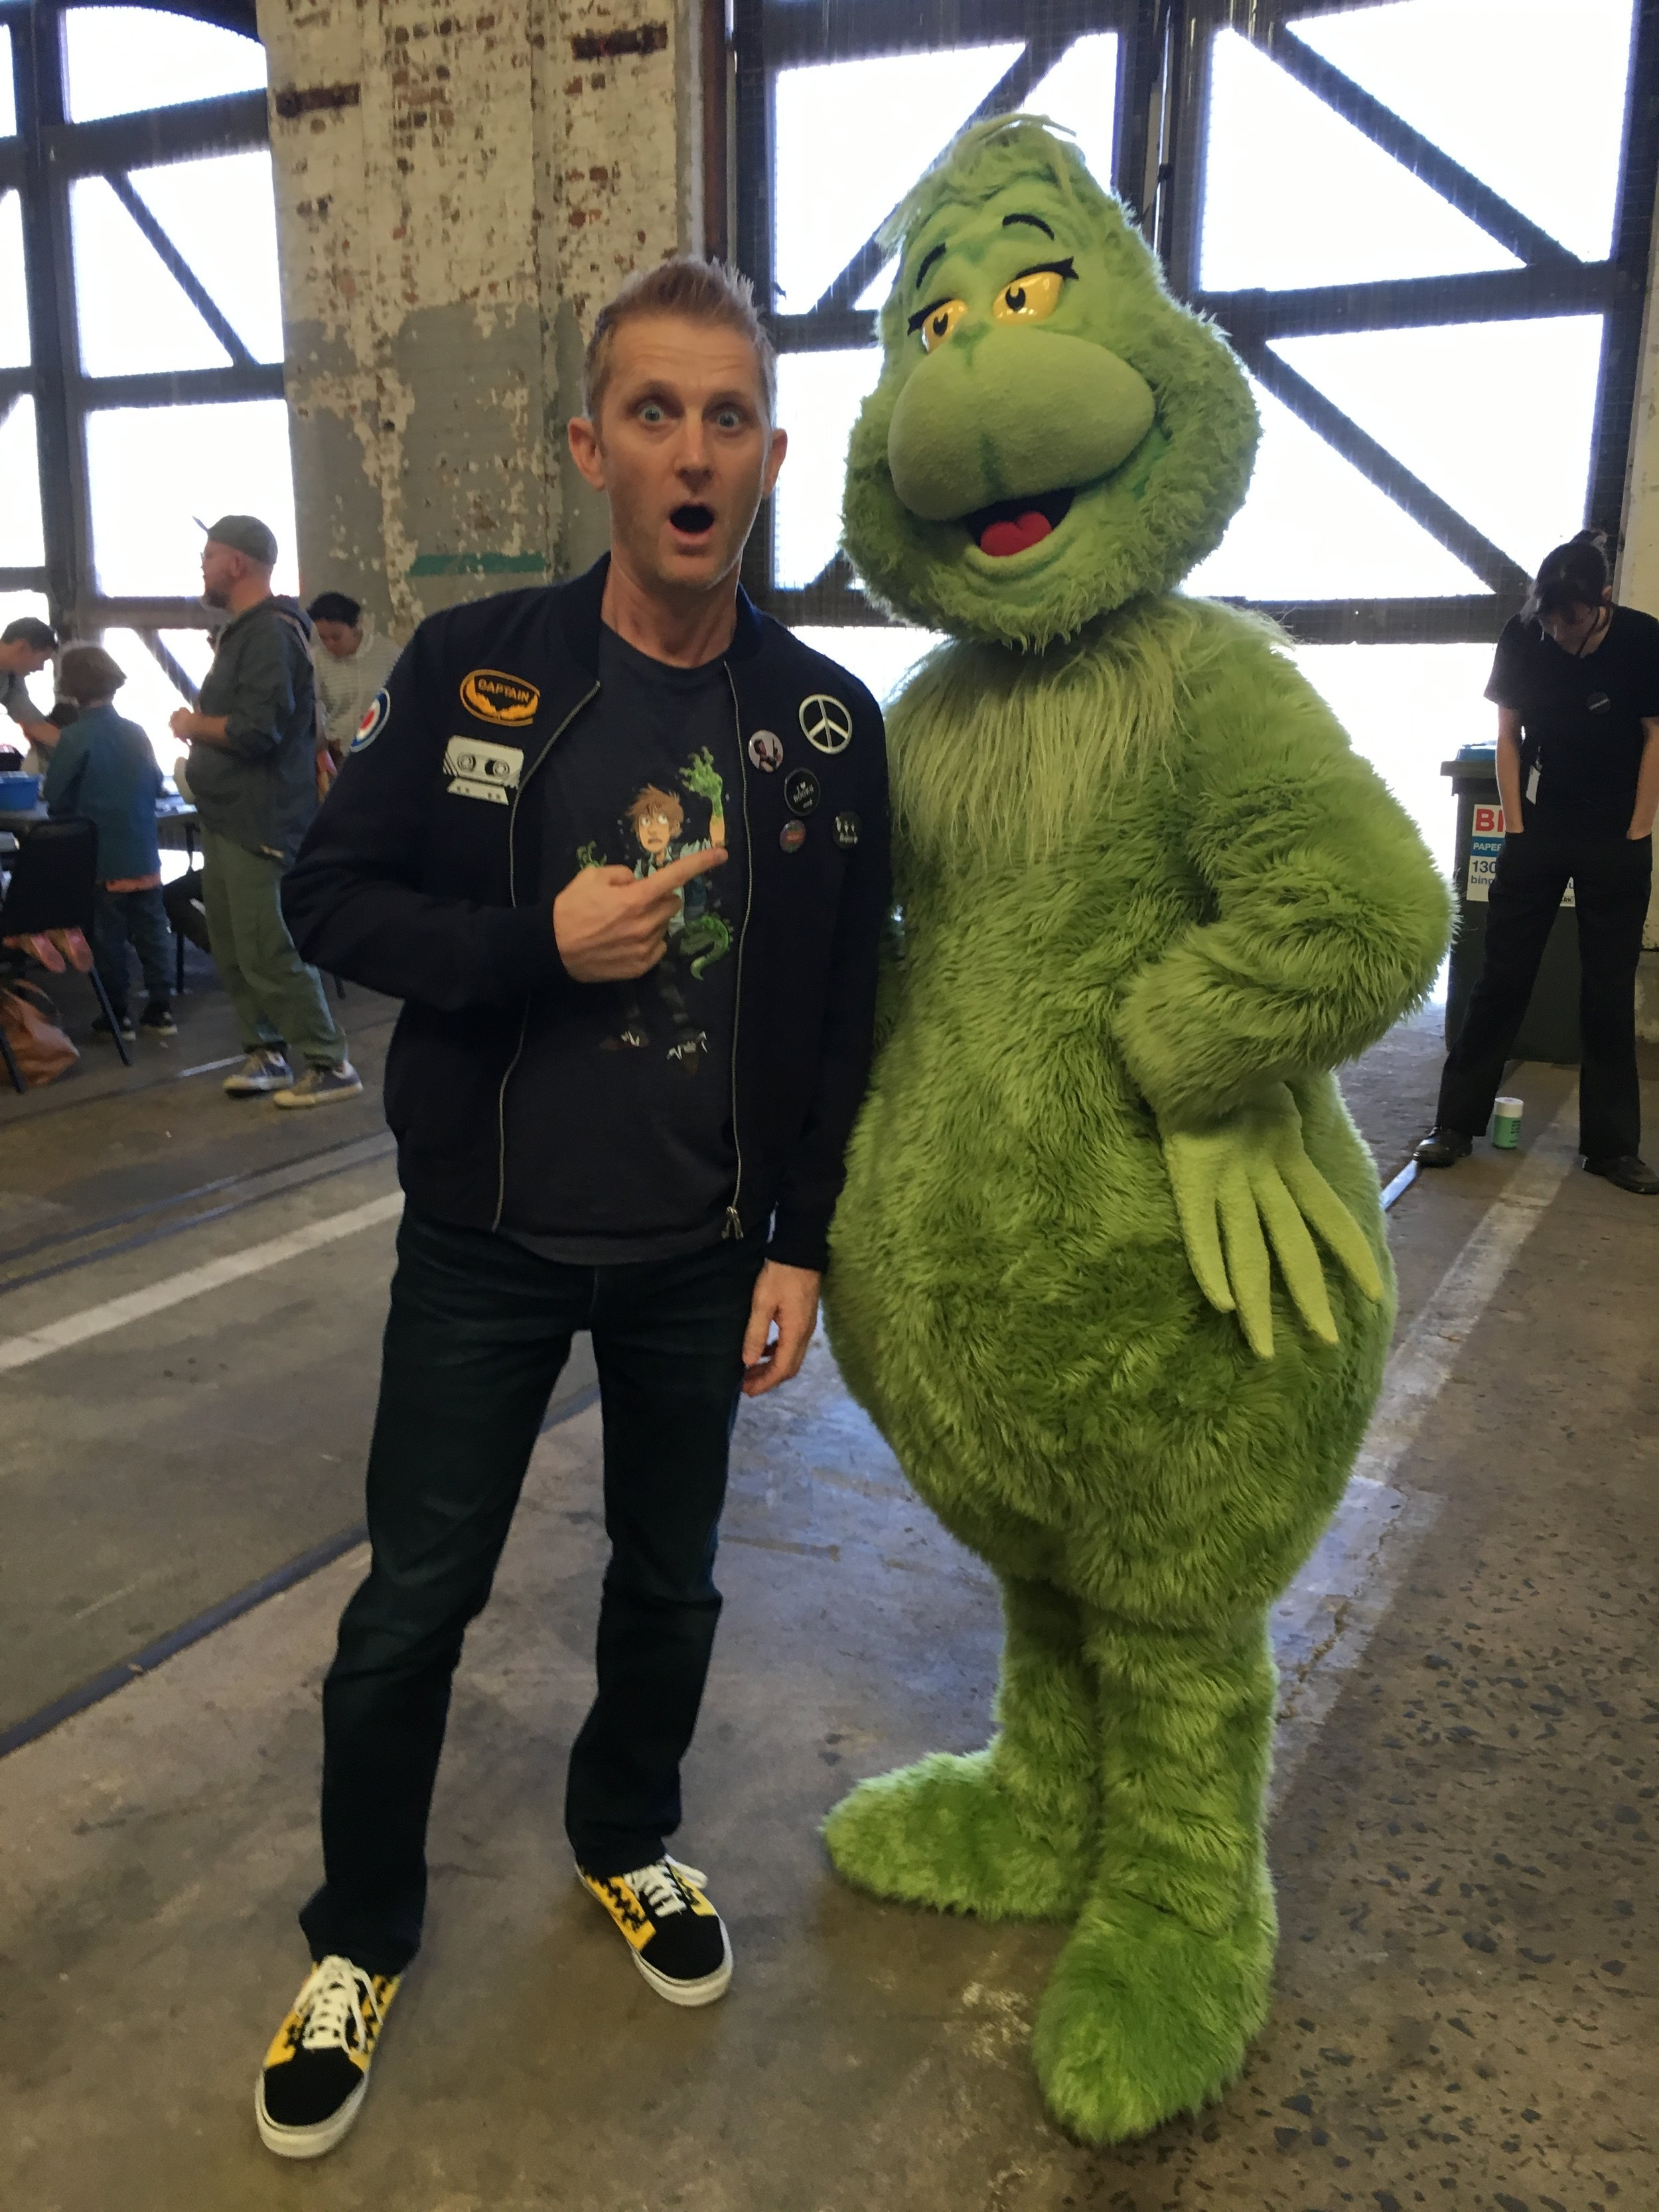 OMG! I met the Grinch at the Sydney Writers' Festival!